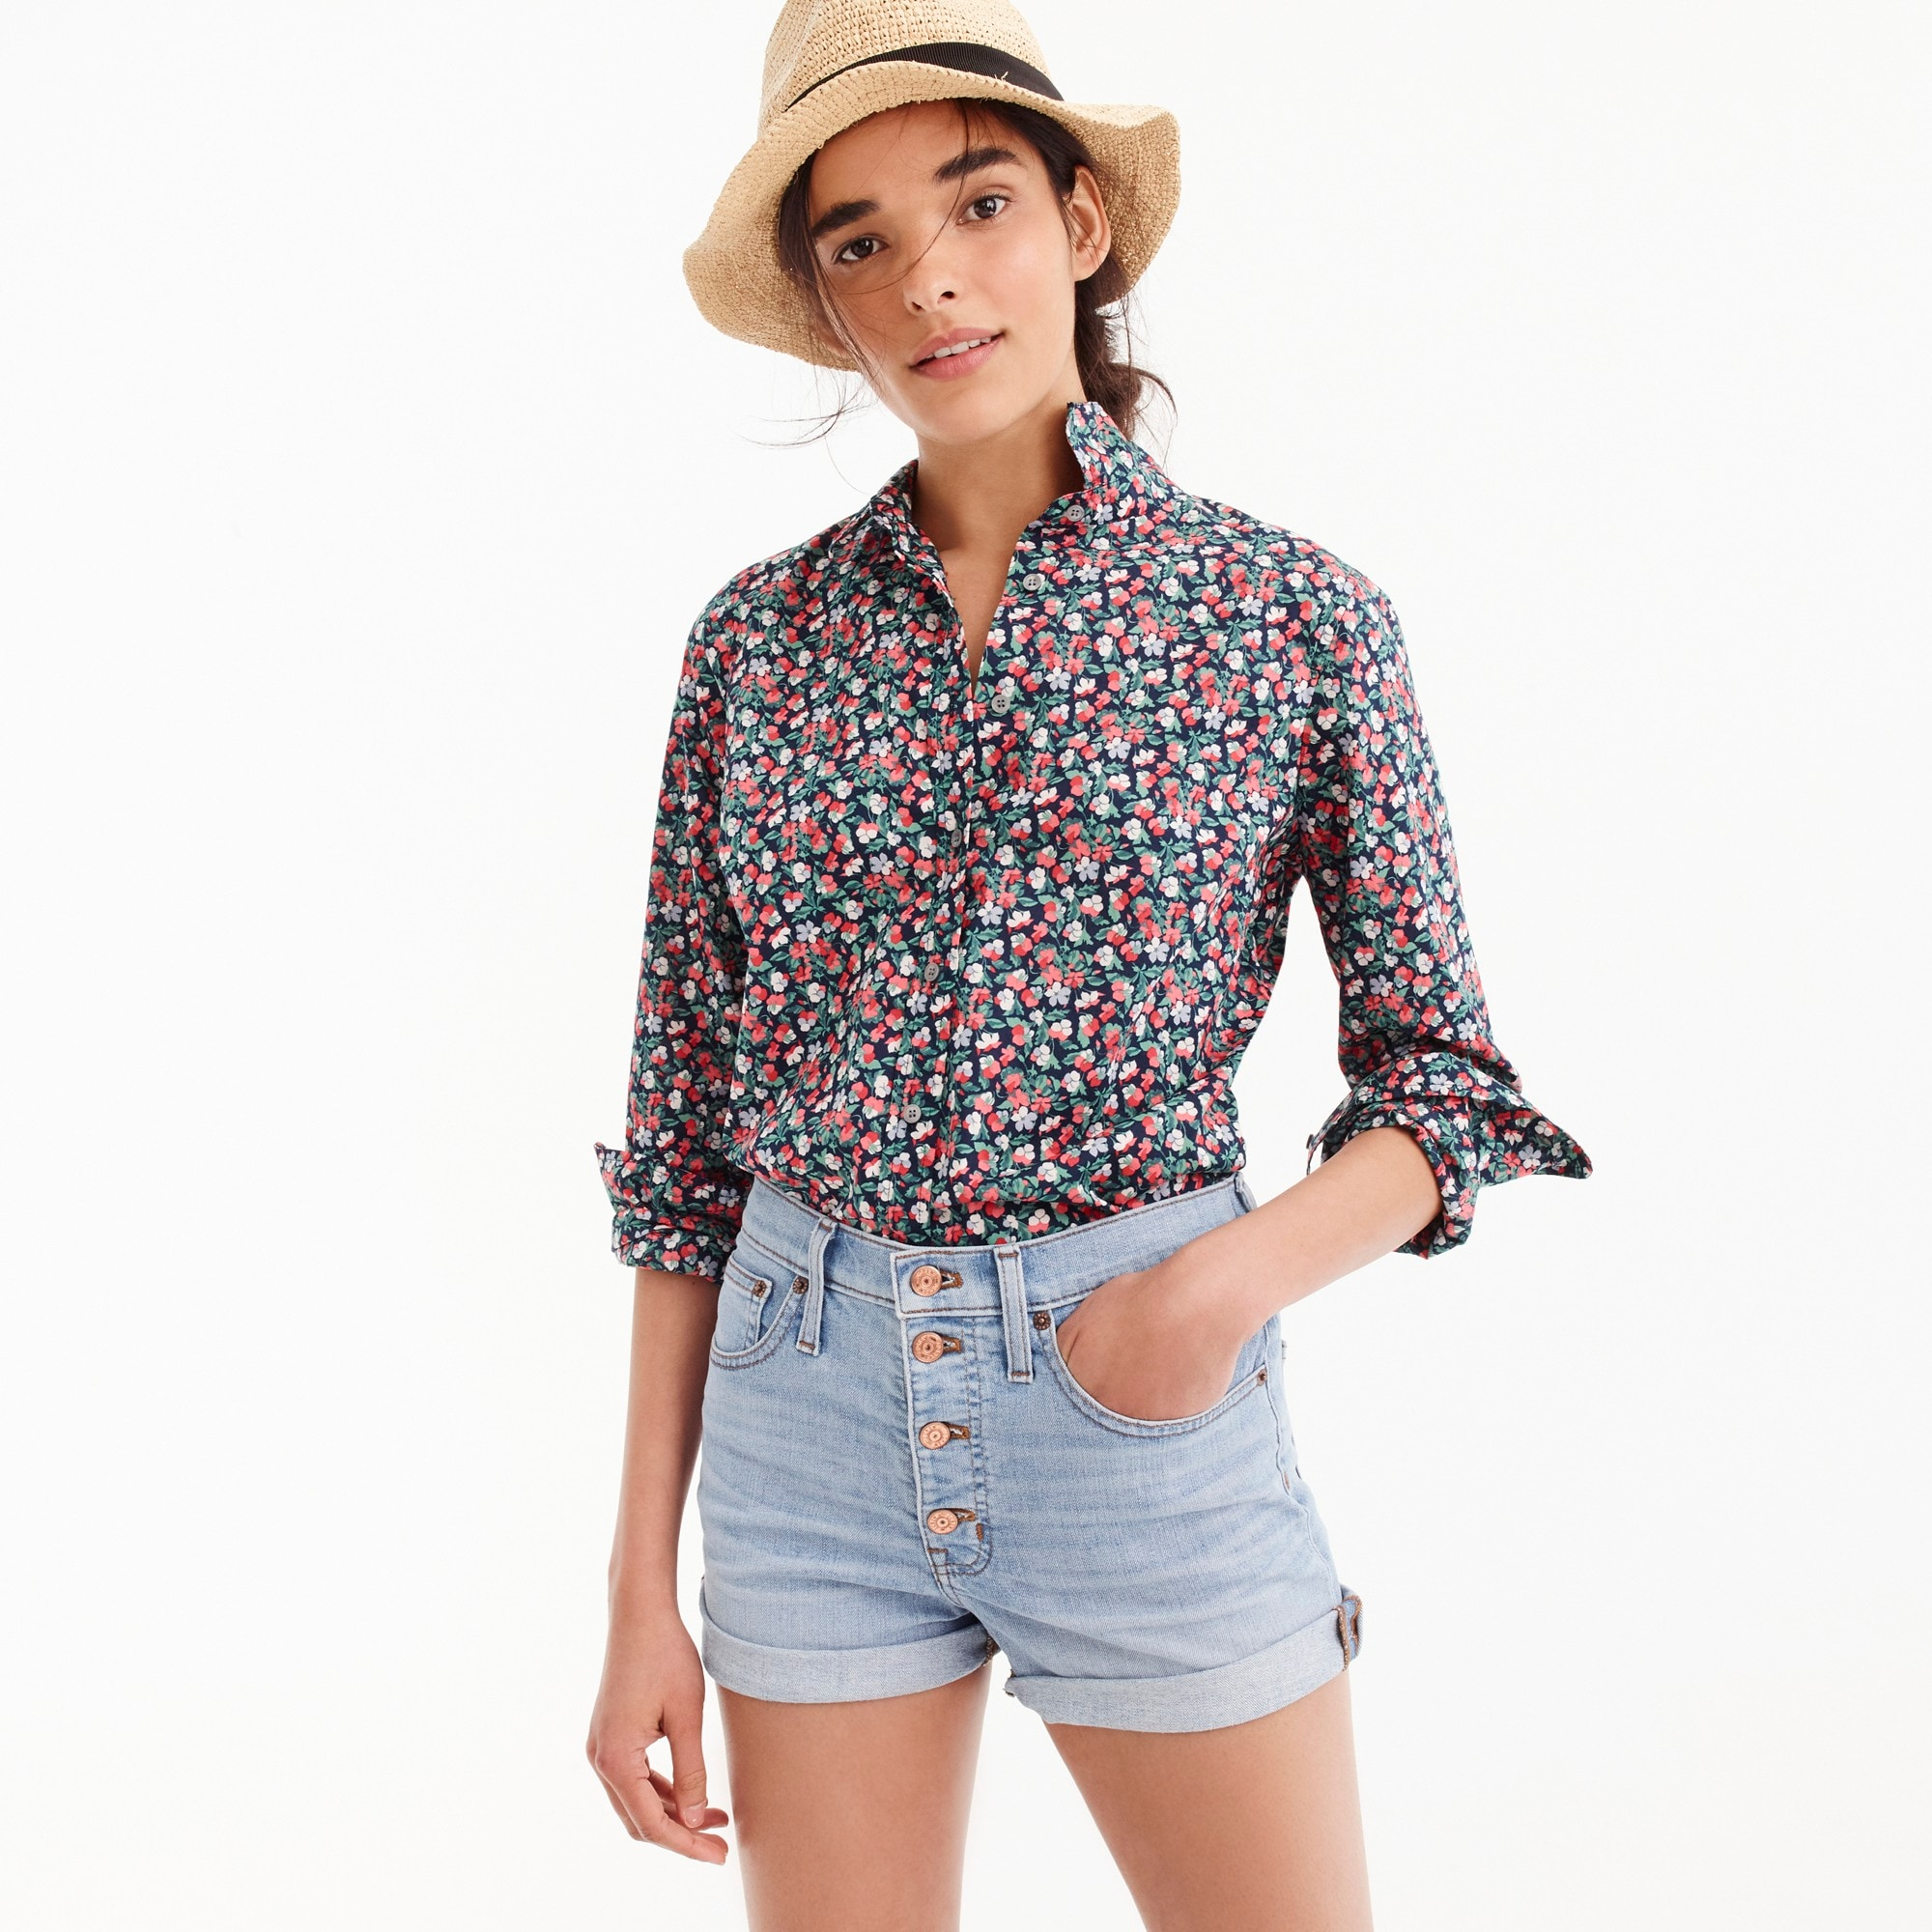 Slim perfect shirt in Liberty® Sarah floral women shirts & tops c